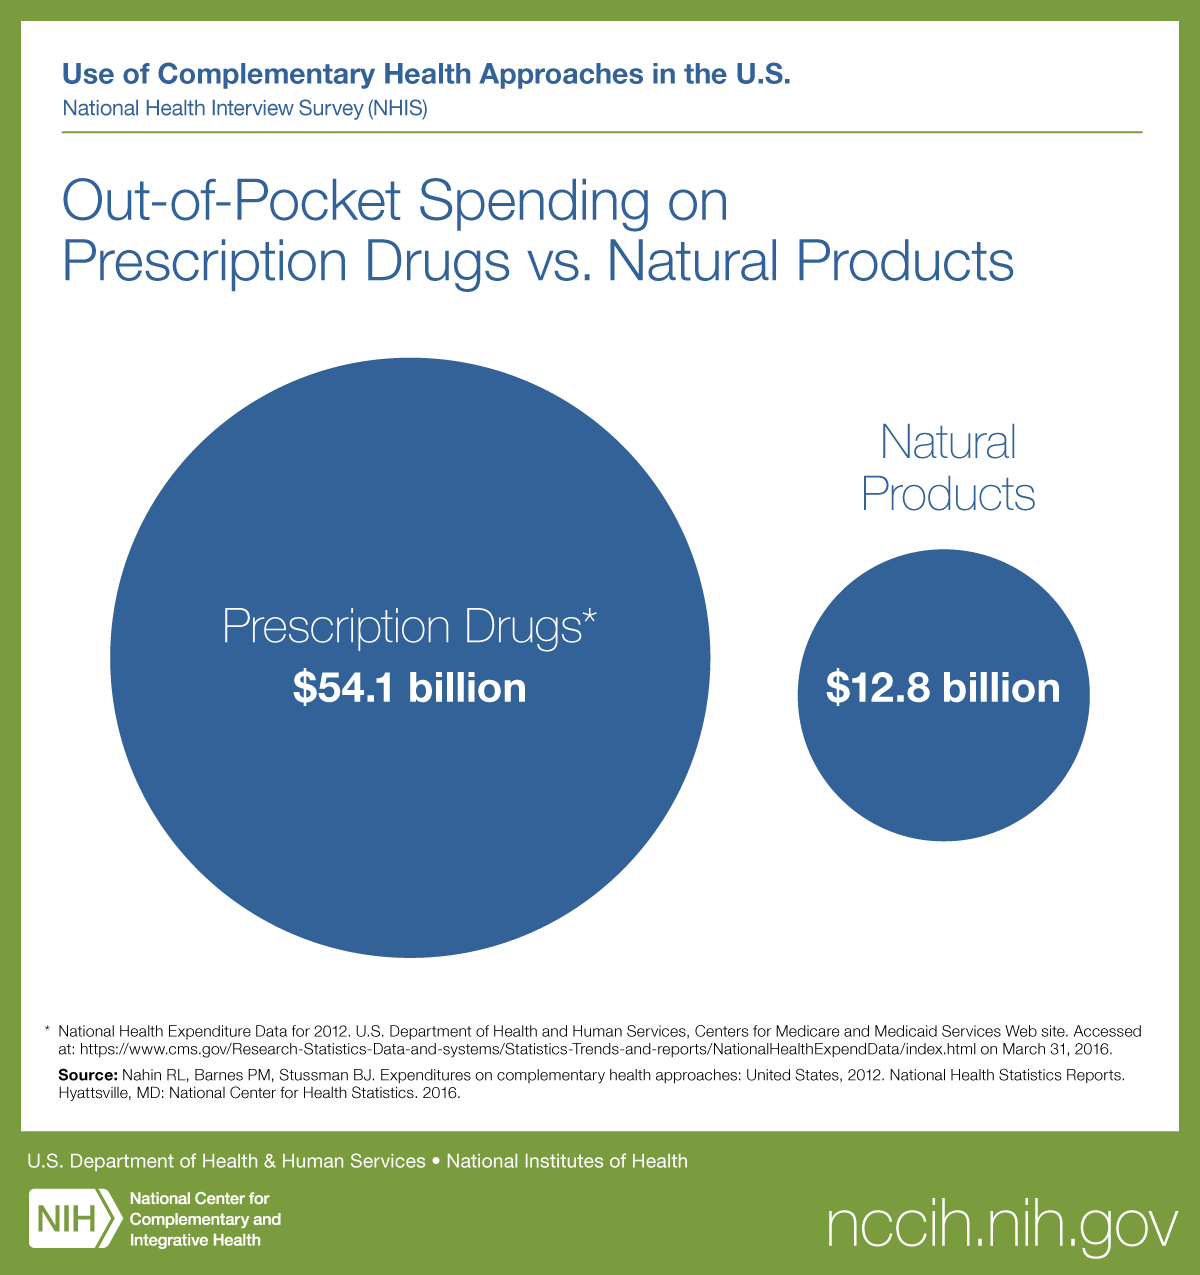 Out-of-Pocket Spending on Prescription Drugs vs. Natural Products